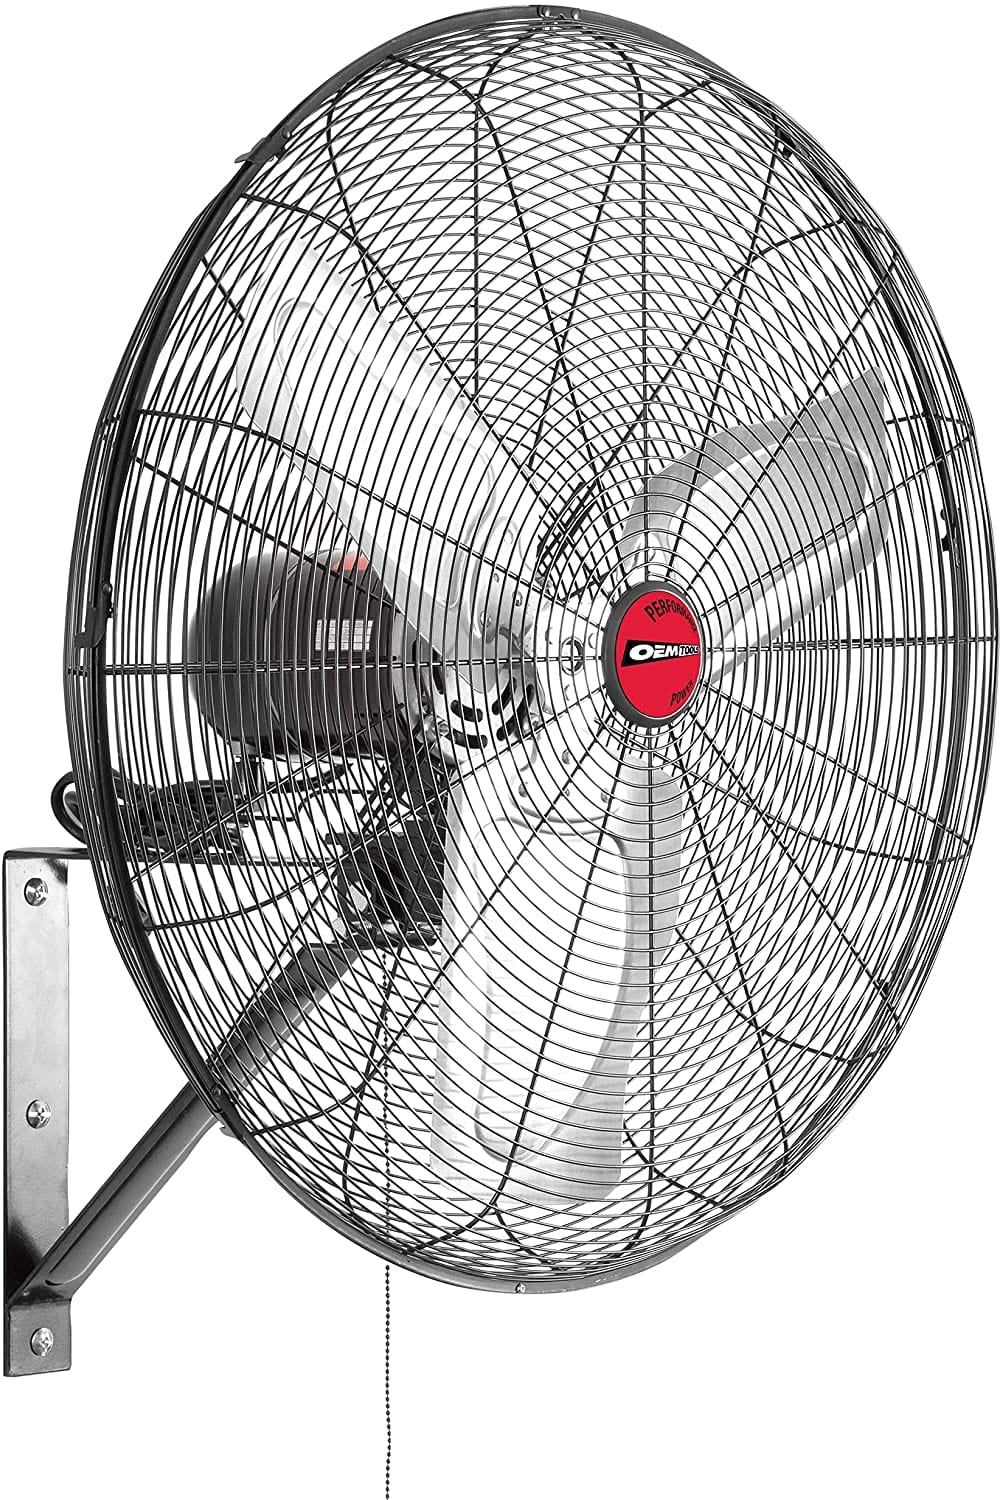 OEM TOOLS OEMTOOLS OEM24883 24 Inch Oscillating Wall Mount Fan